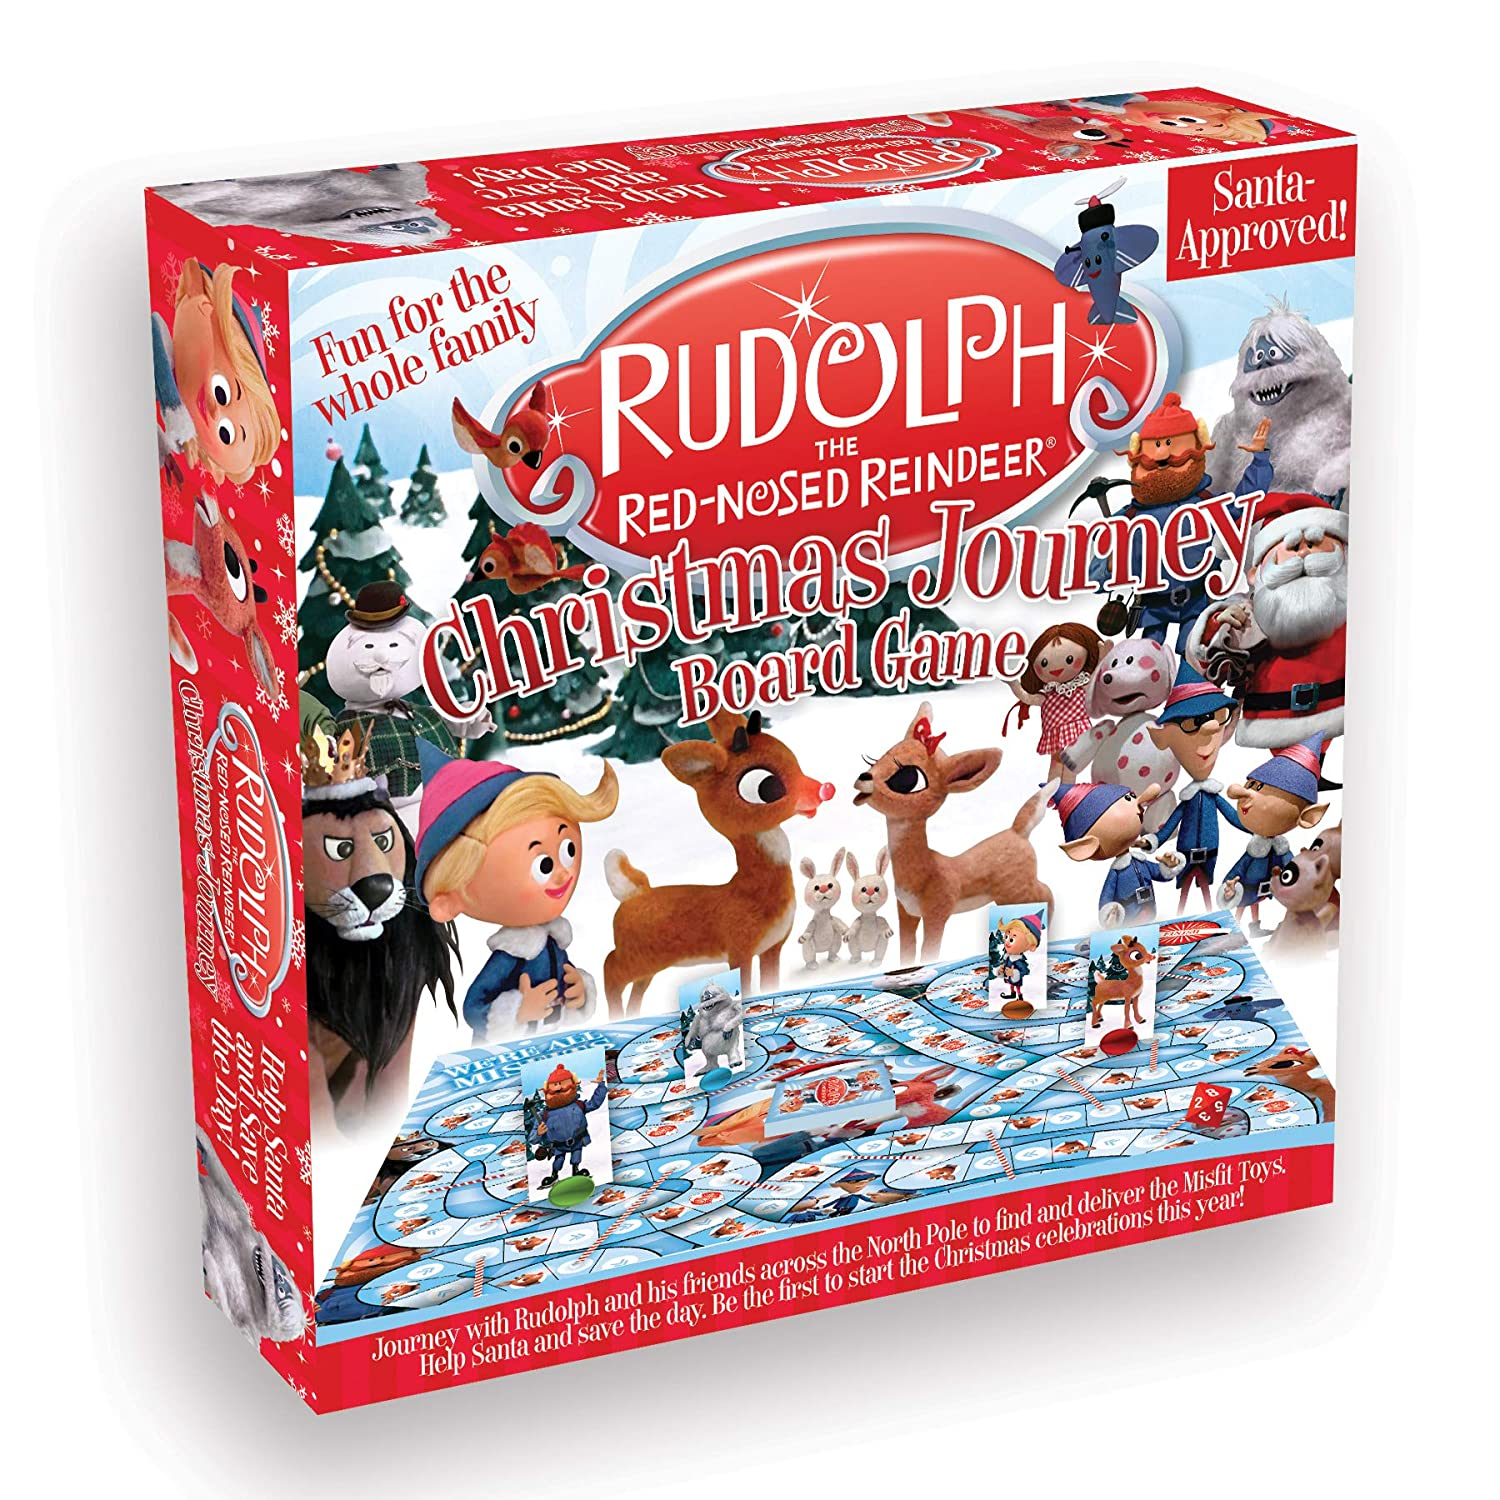 Image of Family Fun Rudolph The Red Nosed Reindeer Christmas Journey Board Game